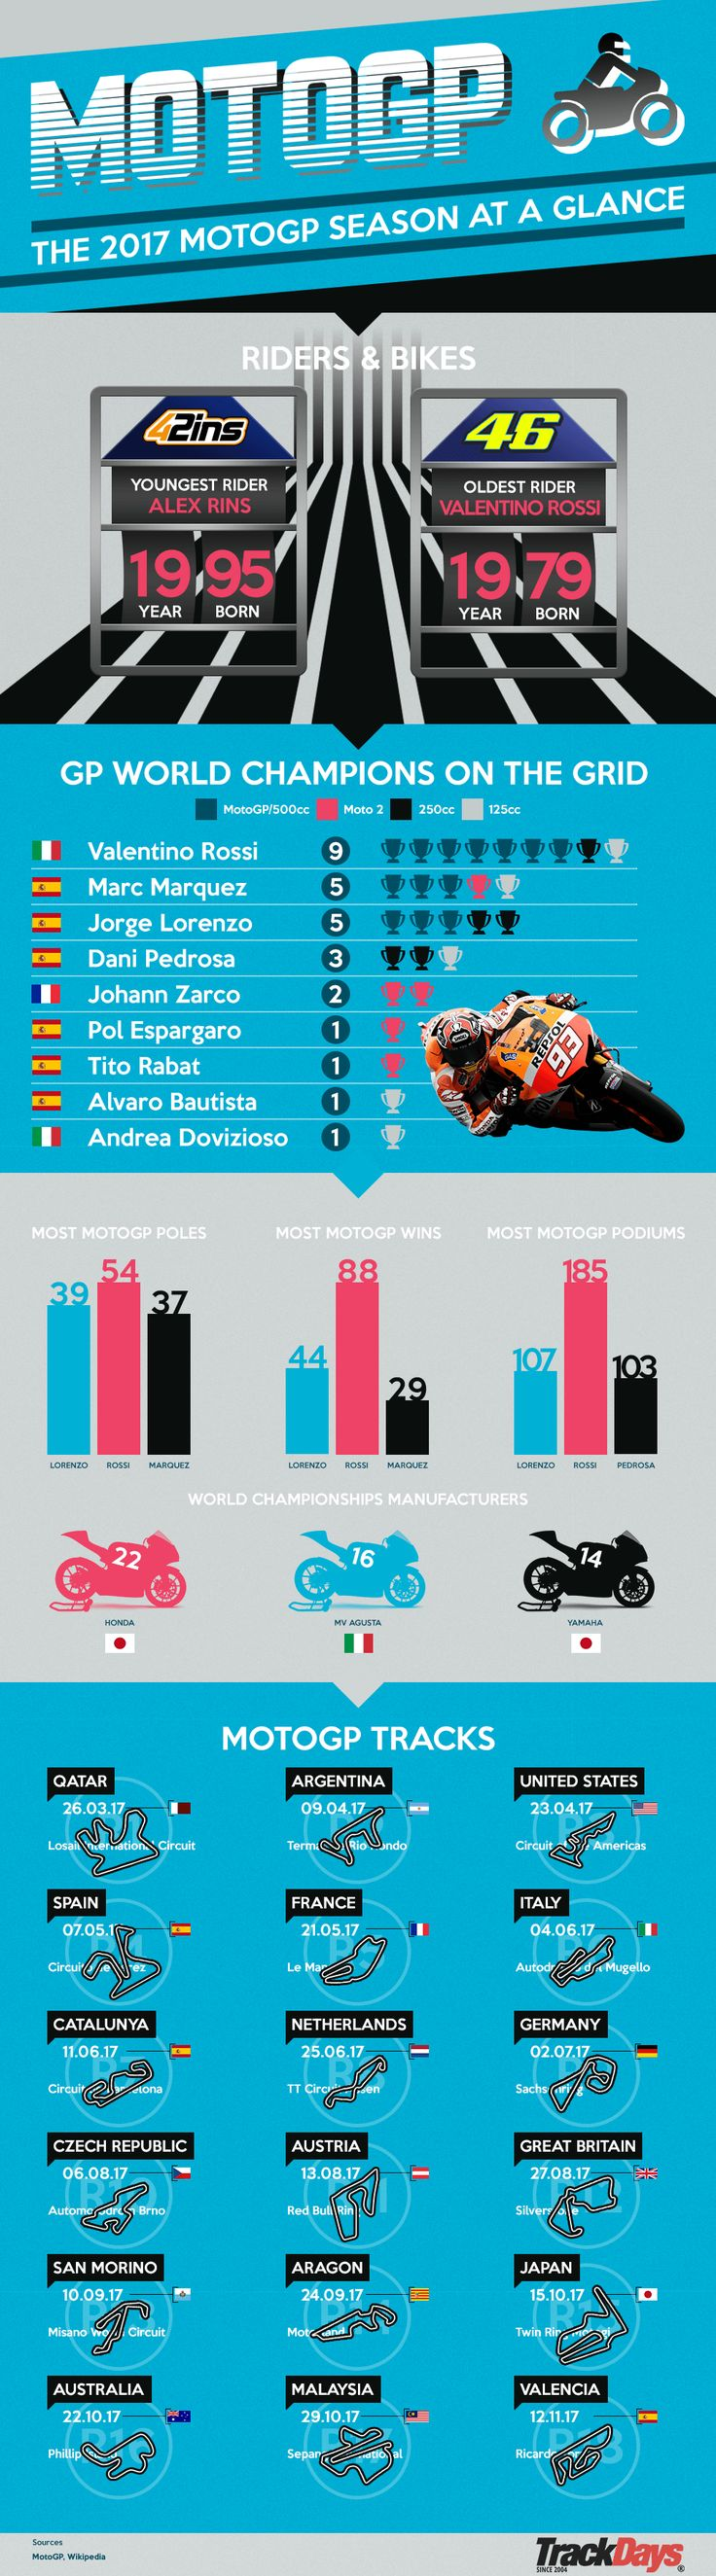 MotoGP 2017 Season At A Glance. #Infographic #MotoGP #Motorbike #Motorsport #Graphic